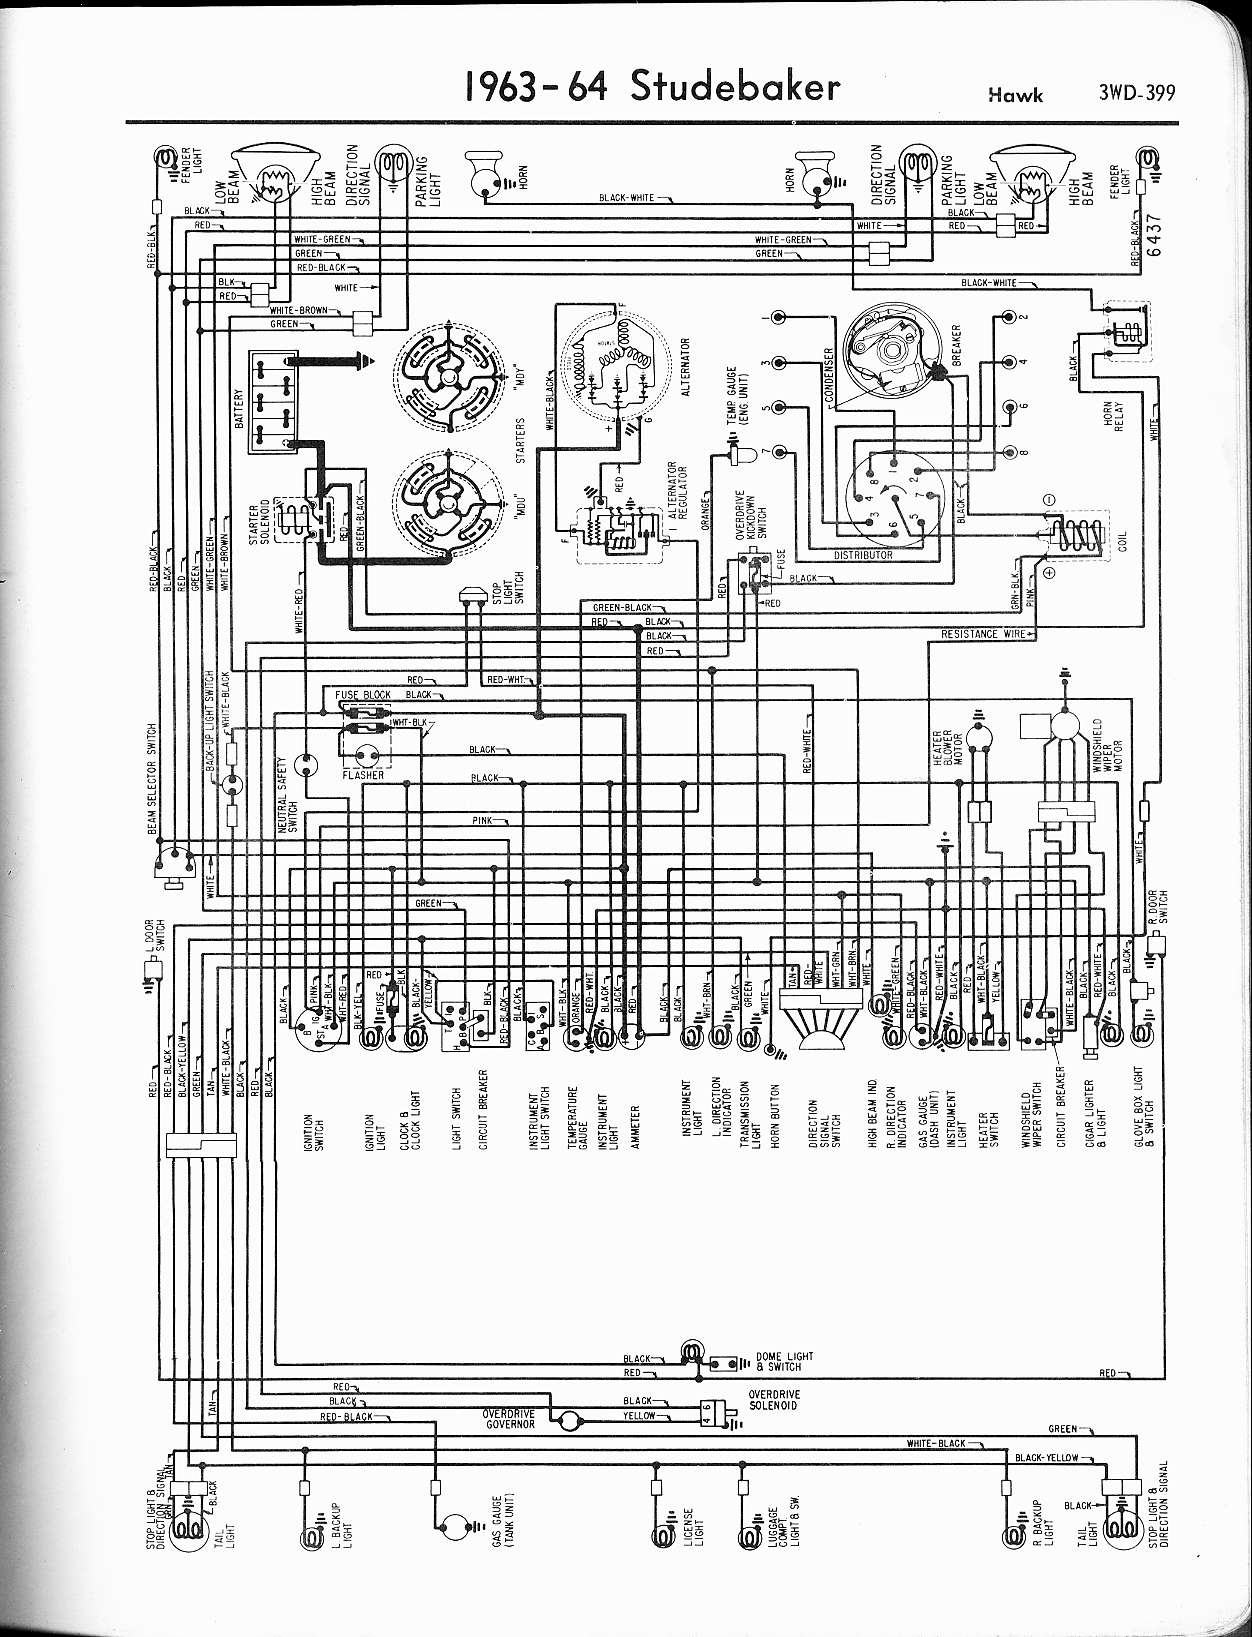 Hawk Signal Wiring Diagram - Schematics Online on